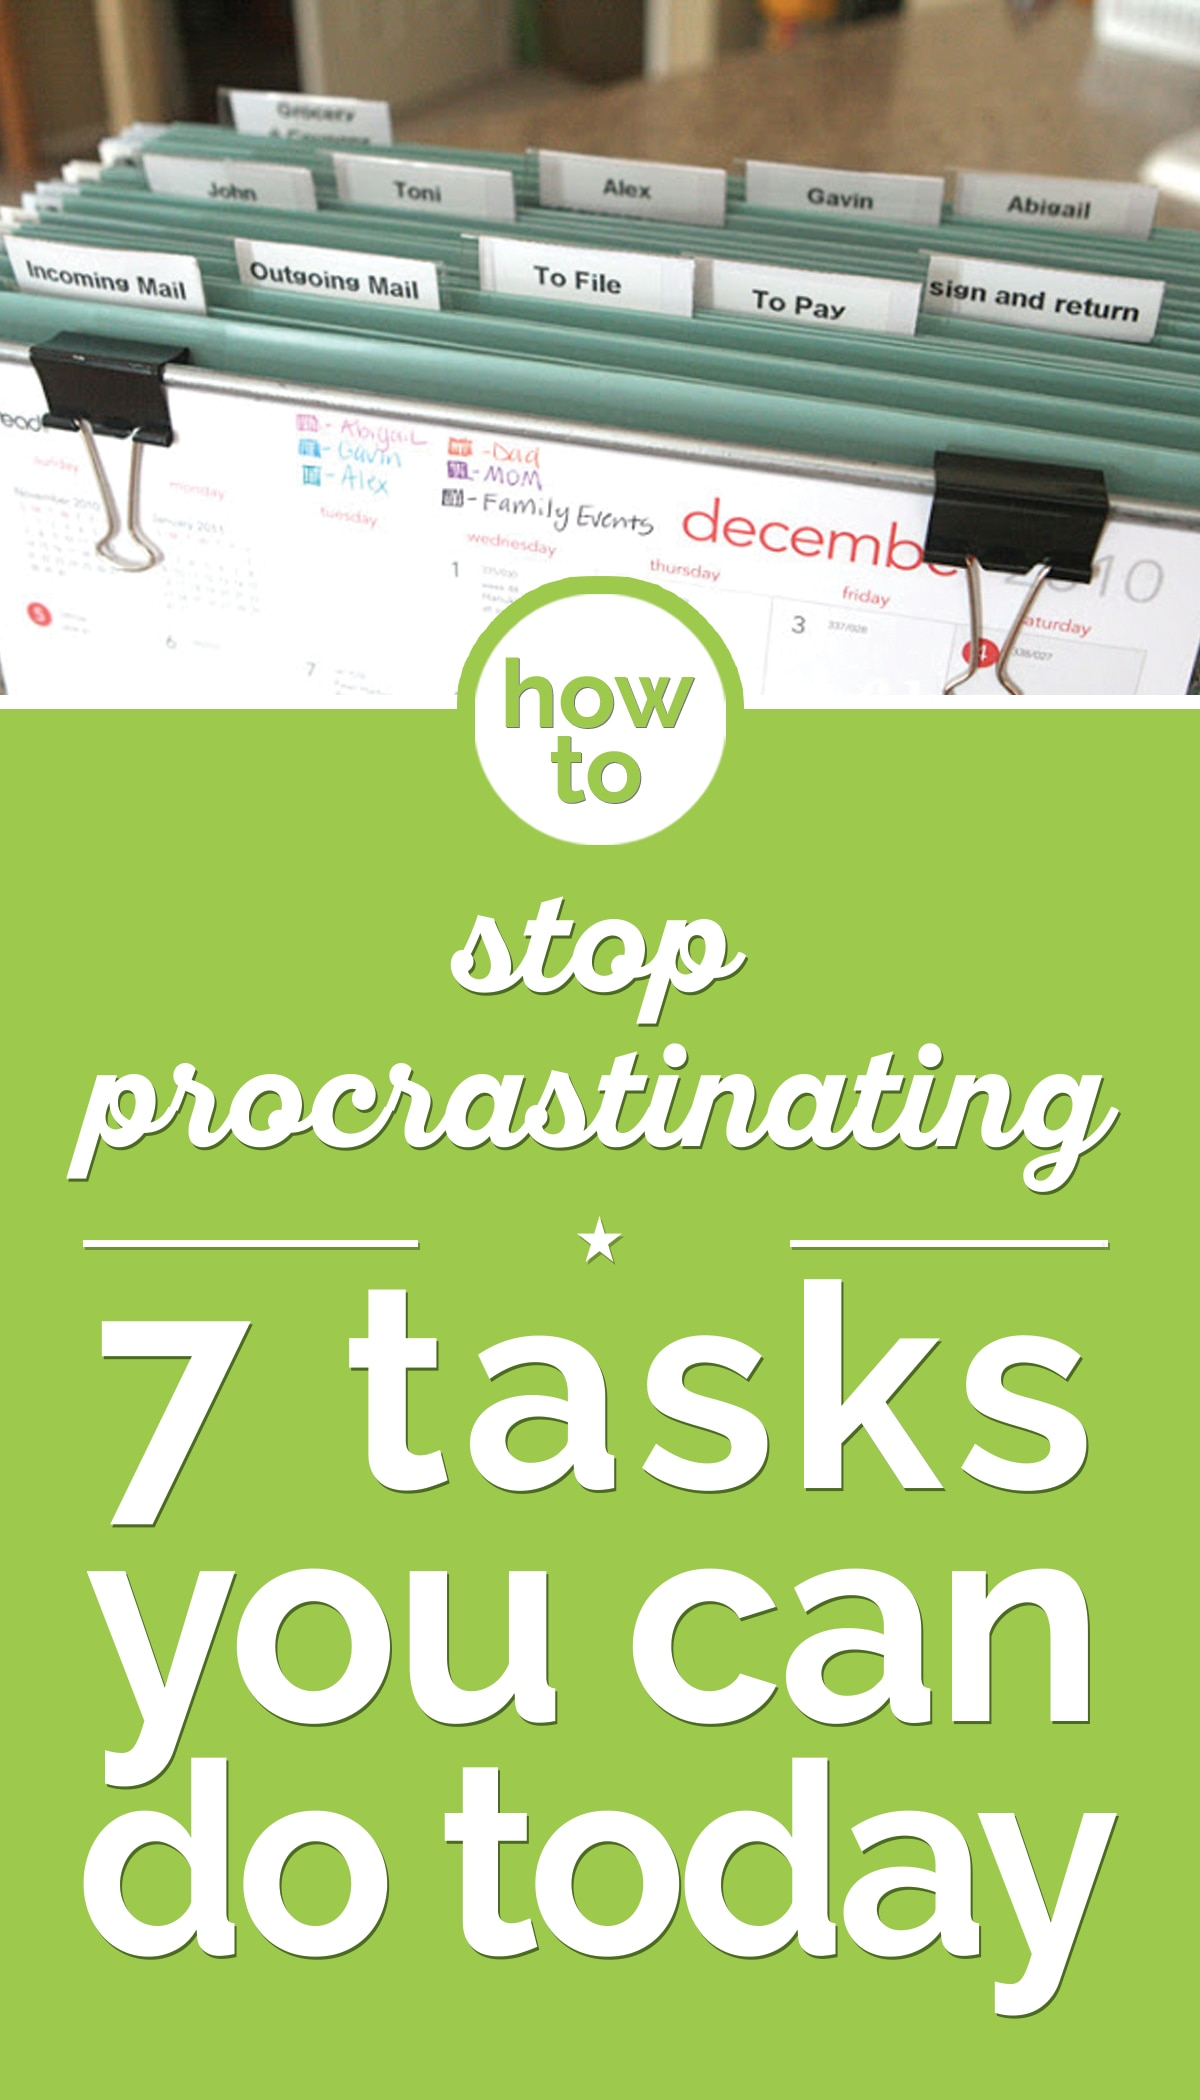 How to Stop Procrastinating: 7 Tasks You Can Do Today | thegoodstuff